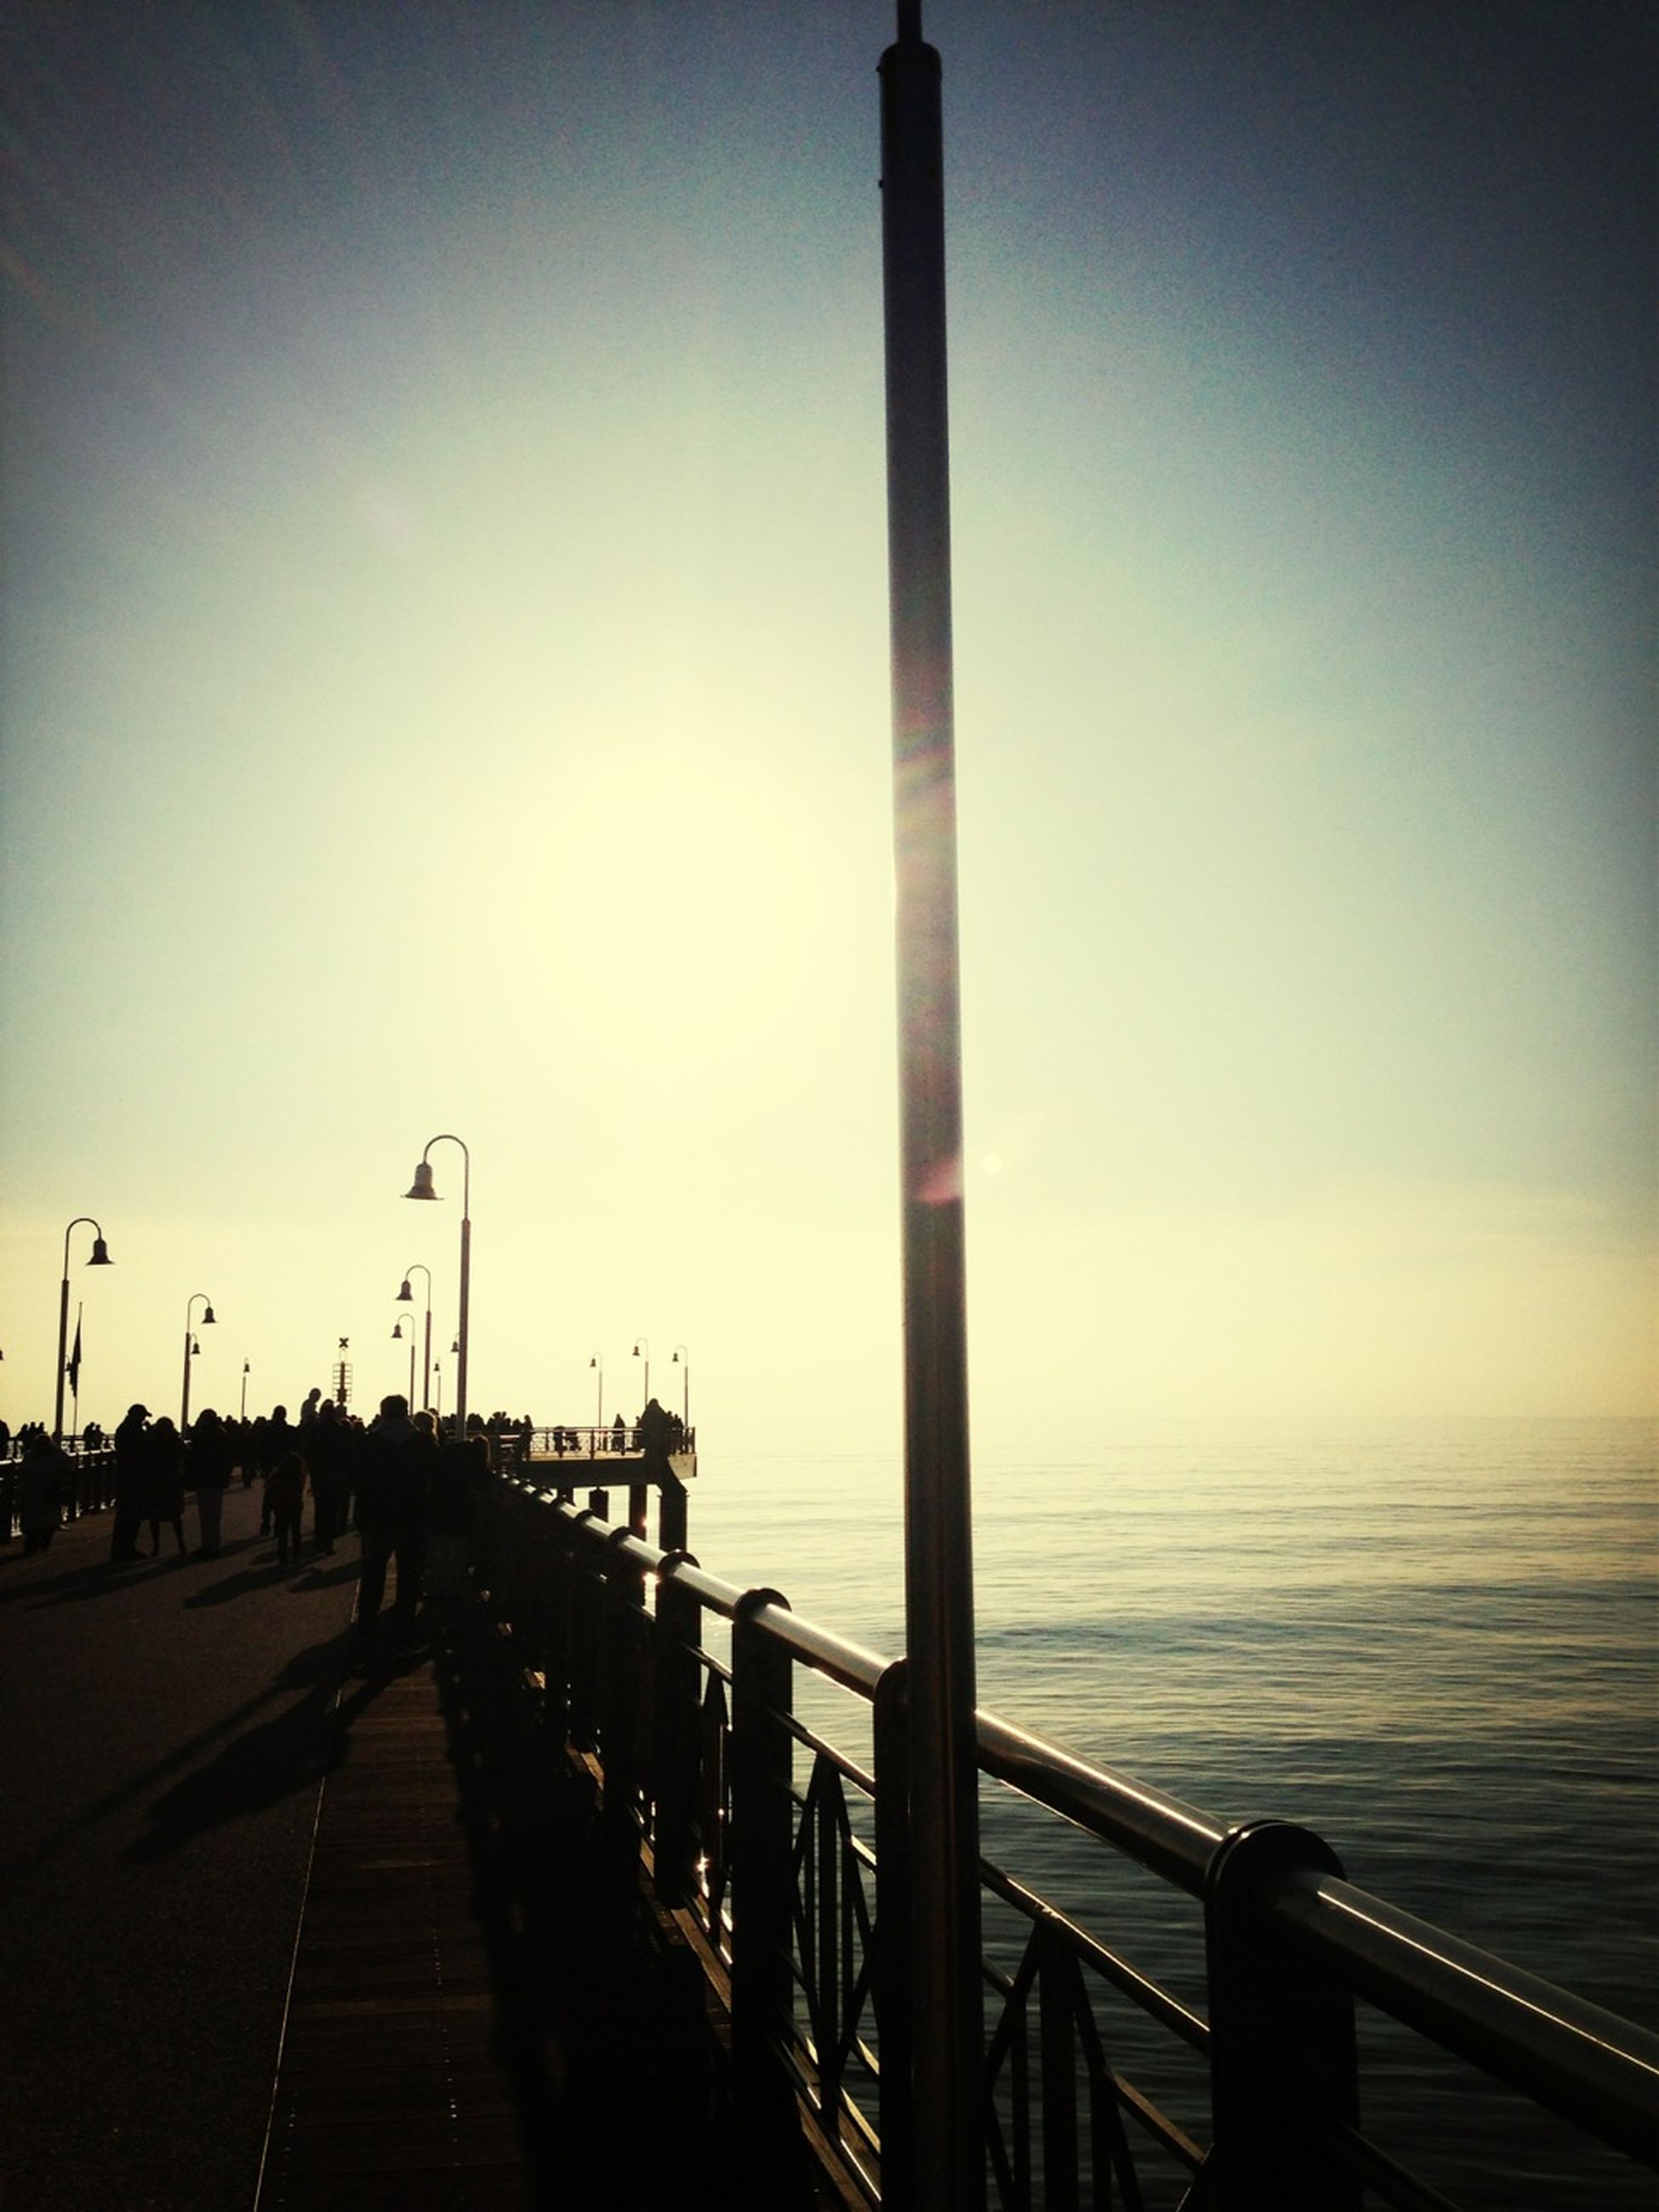 water, sea, railing, pier, the way forward, horizon over water, sunset, built structure, sky, street light, tranquility, nature, tranquil scene, scenics, silhouette, connection, beauty in nature, clear sky, long, architecture